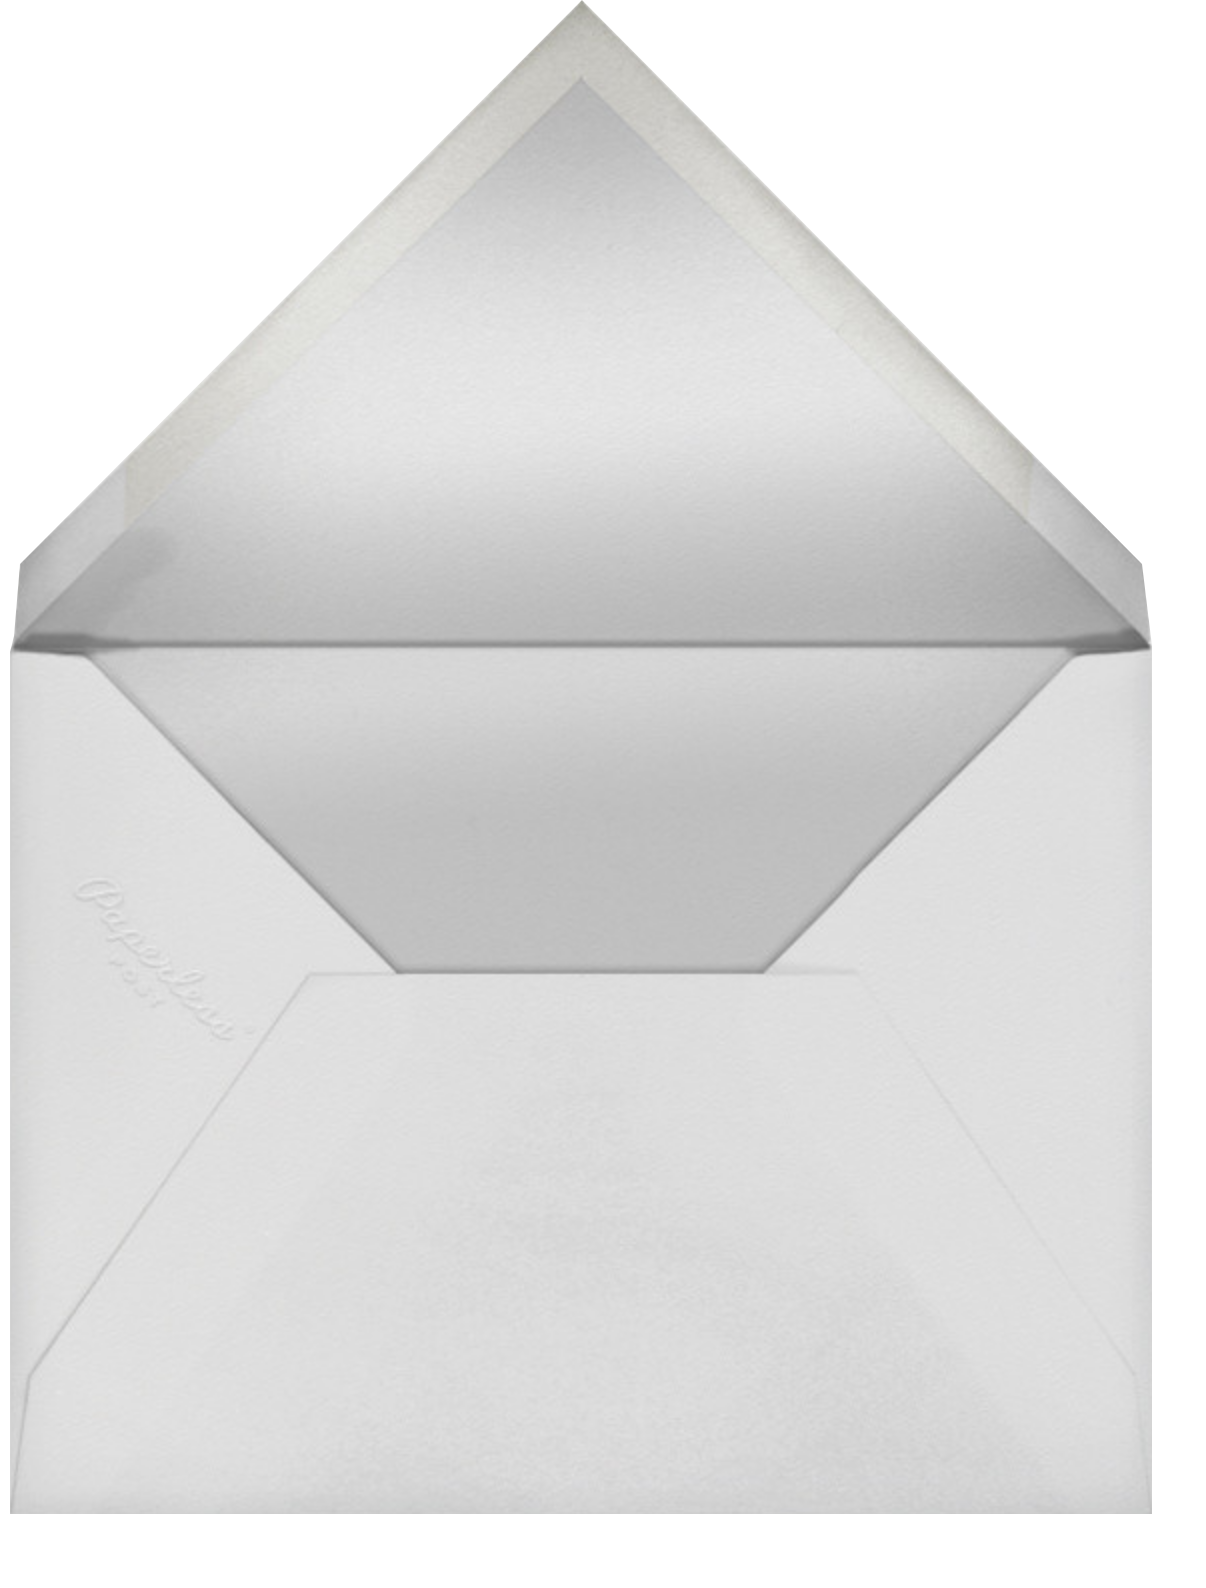 Hip Pop - Paperless Post - Father's Day - envelope back